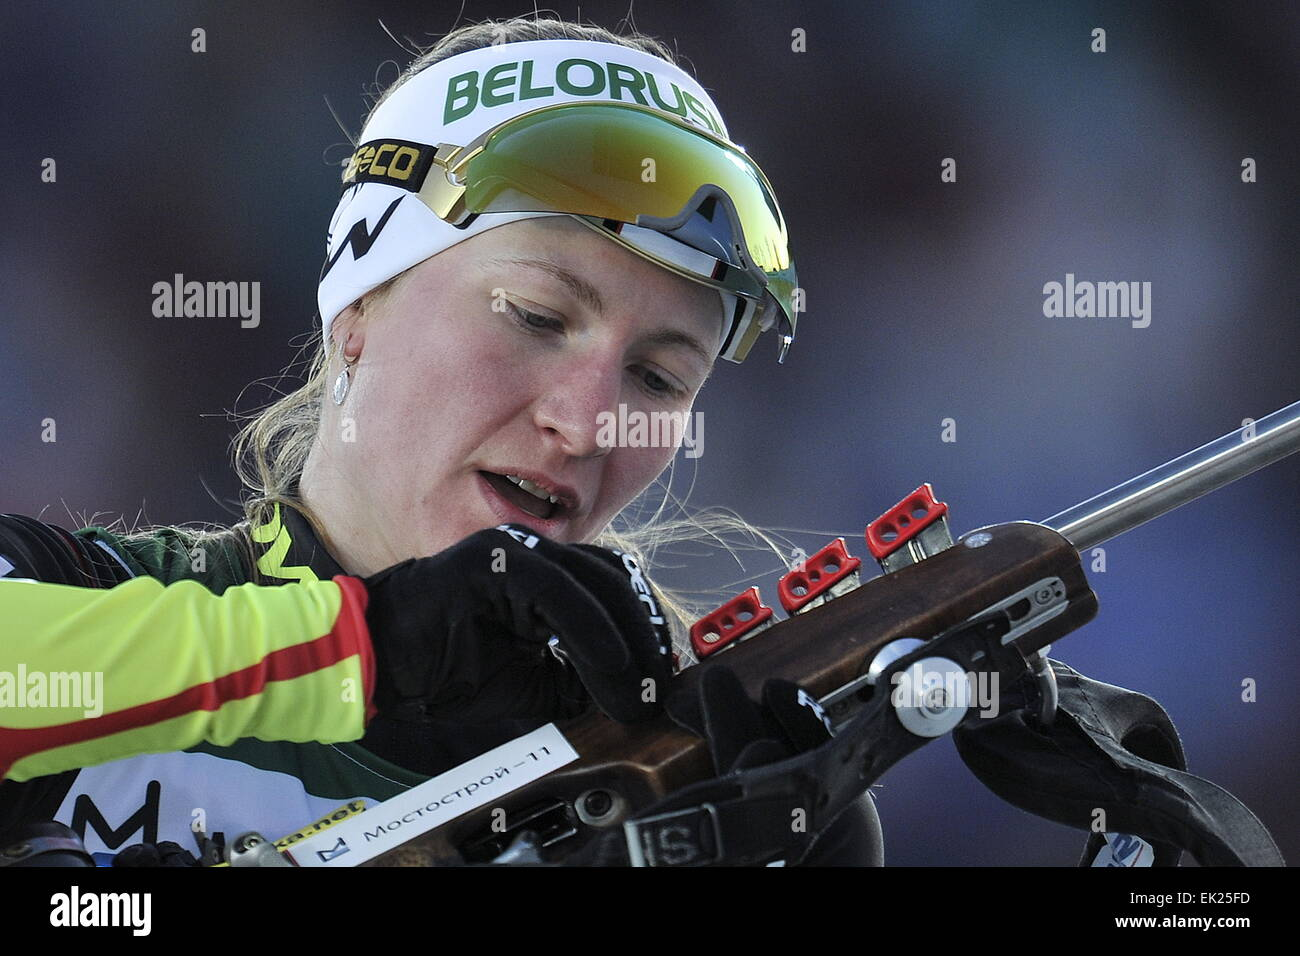 Tyumen, Russia. 4th Apr, 2014. Belarus's Darya Domracheva competes in a mixed relay race at the 2015 Biathlon - Stock Image